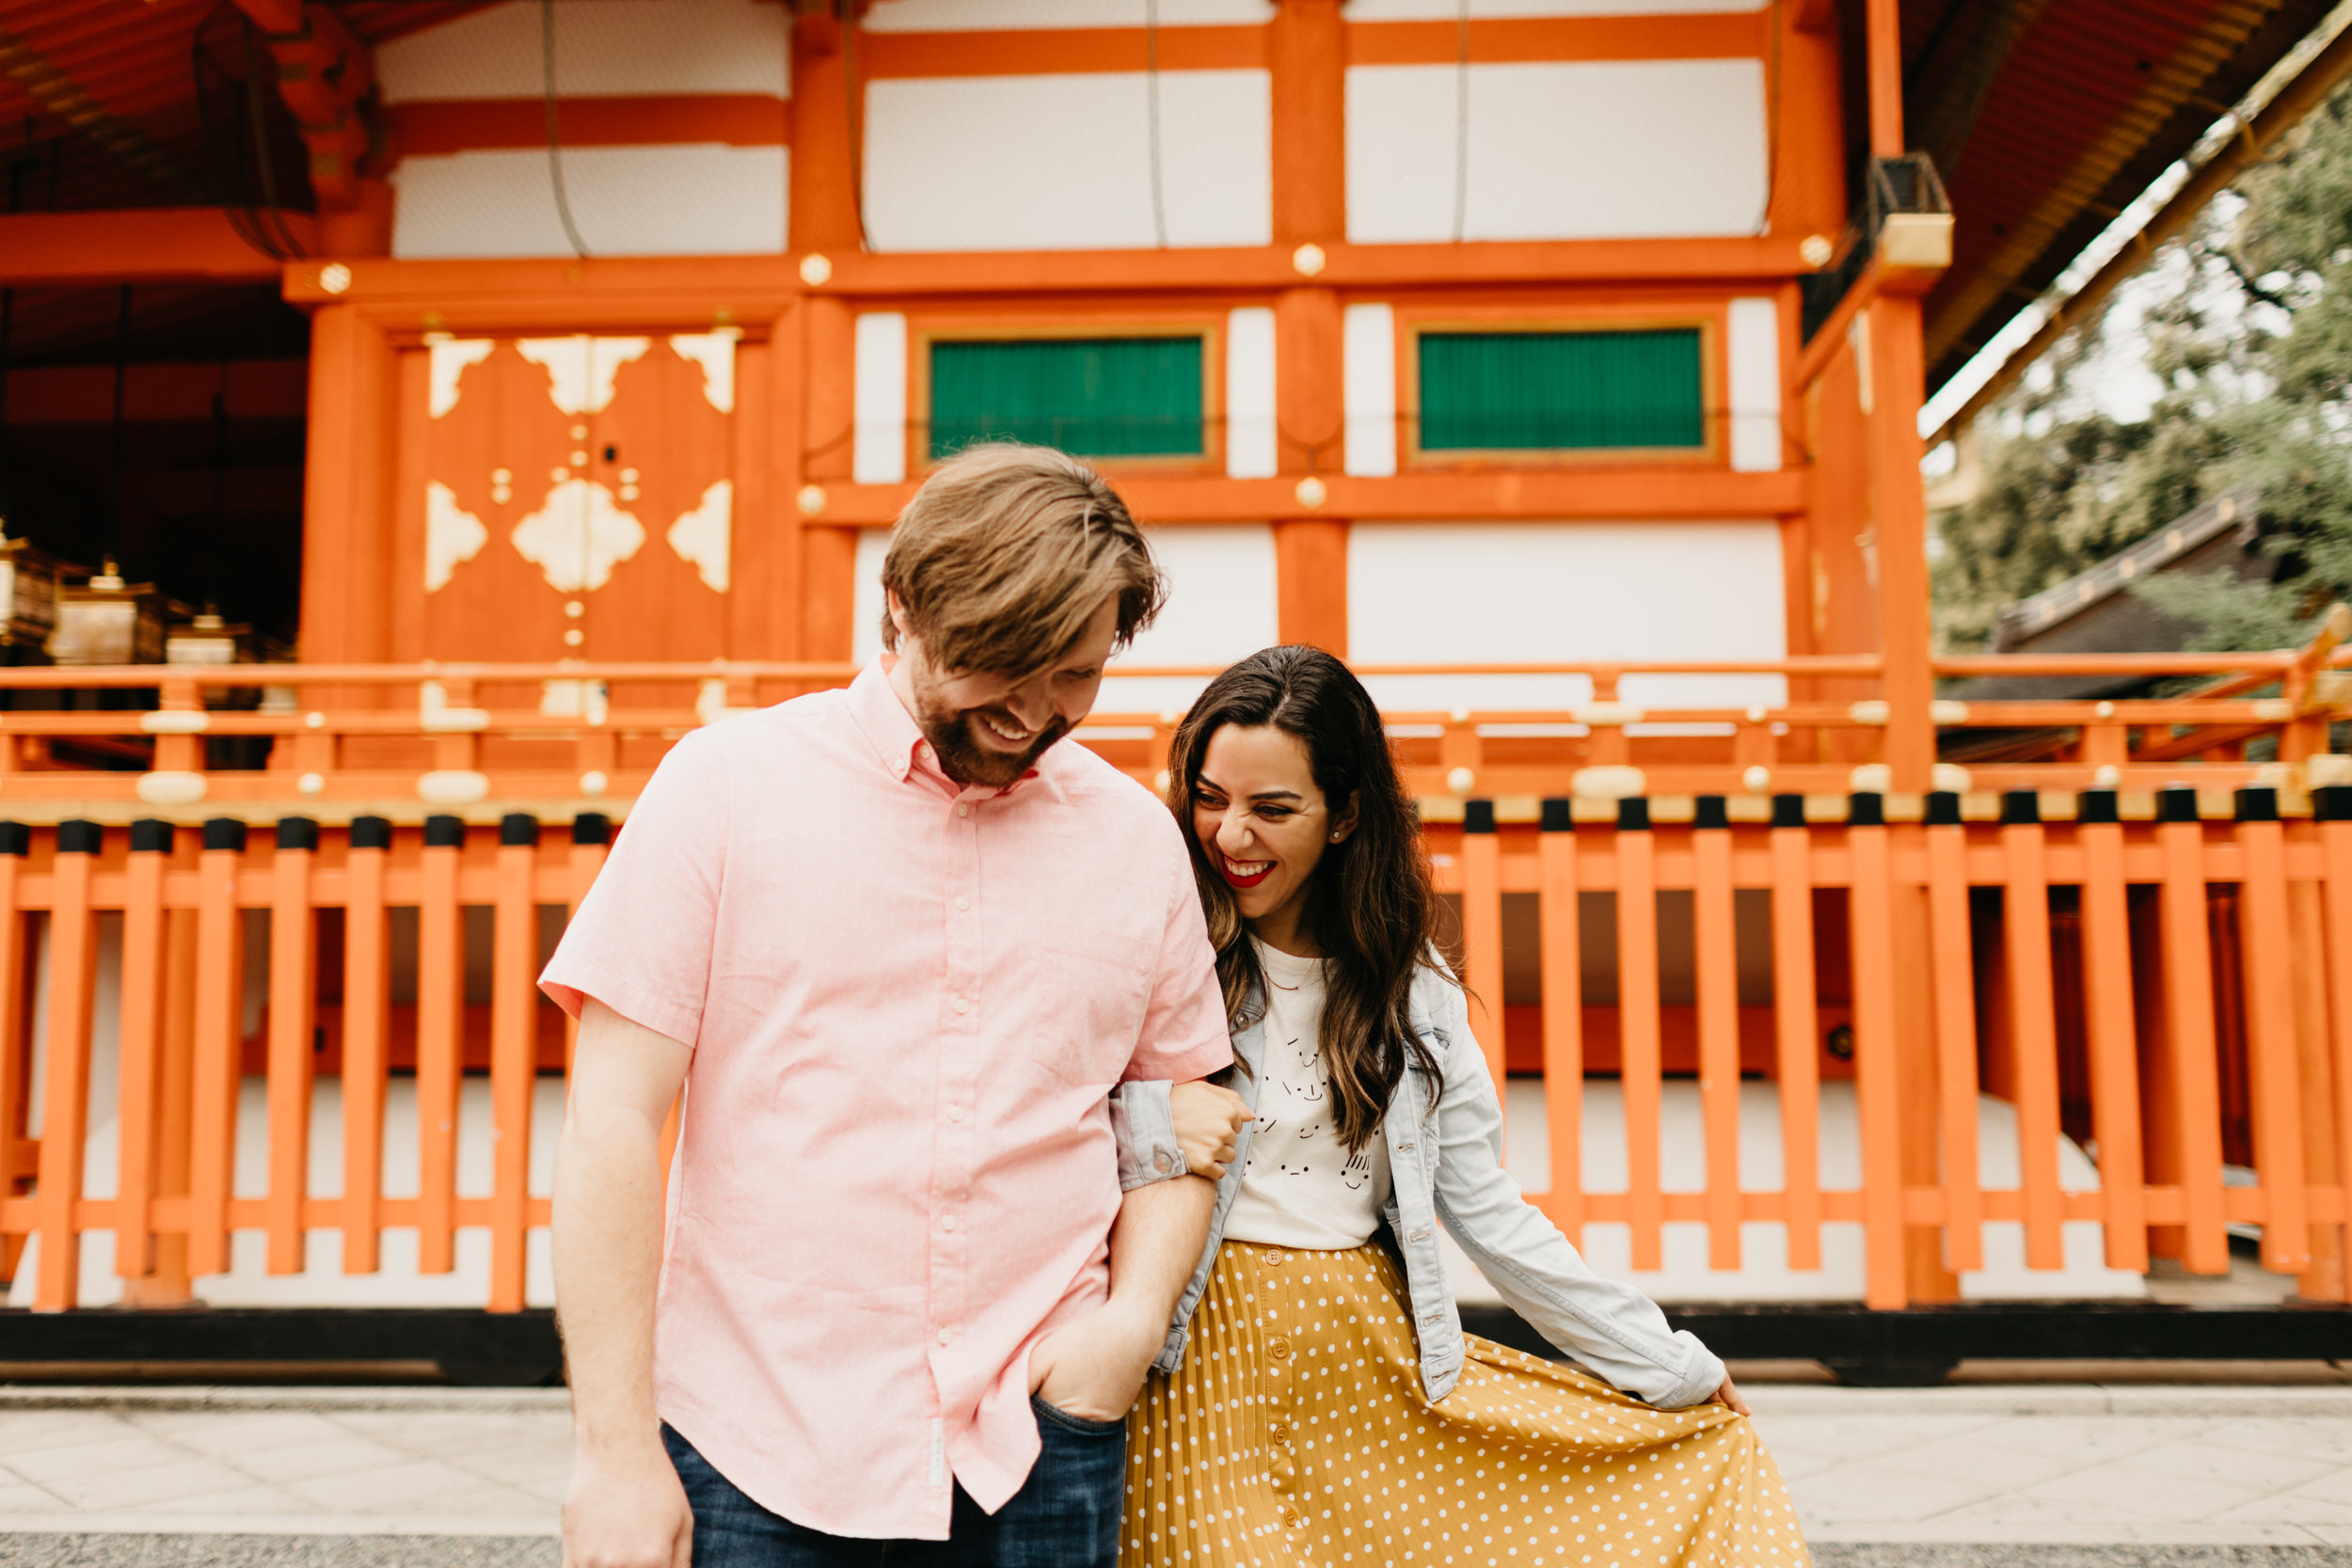 fushimi_inari_shrine_kyoto_couples_session_pictures_by_samantha_look-13.jpg